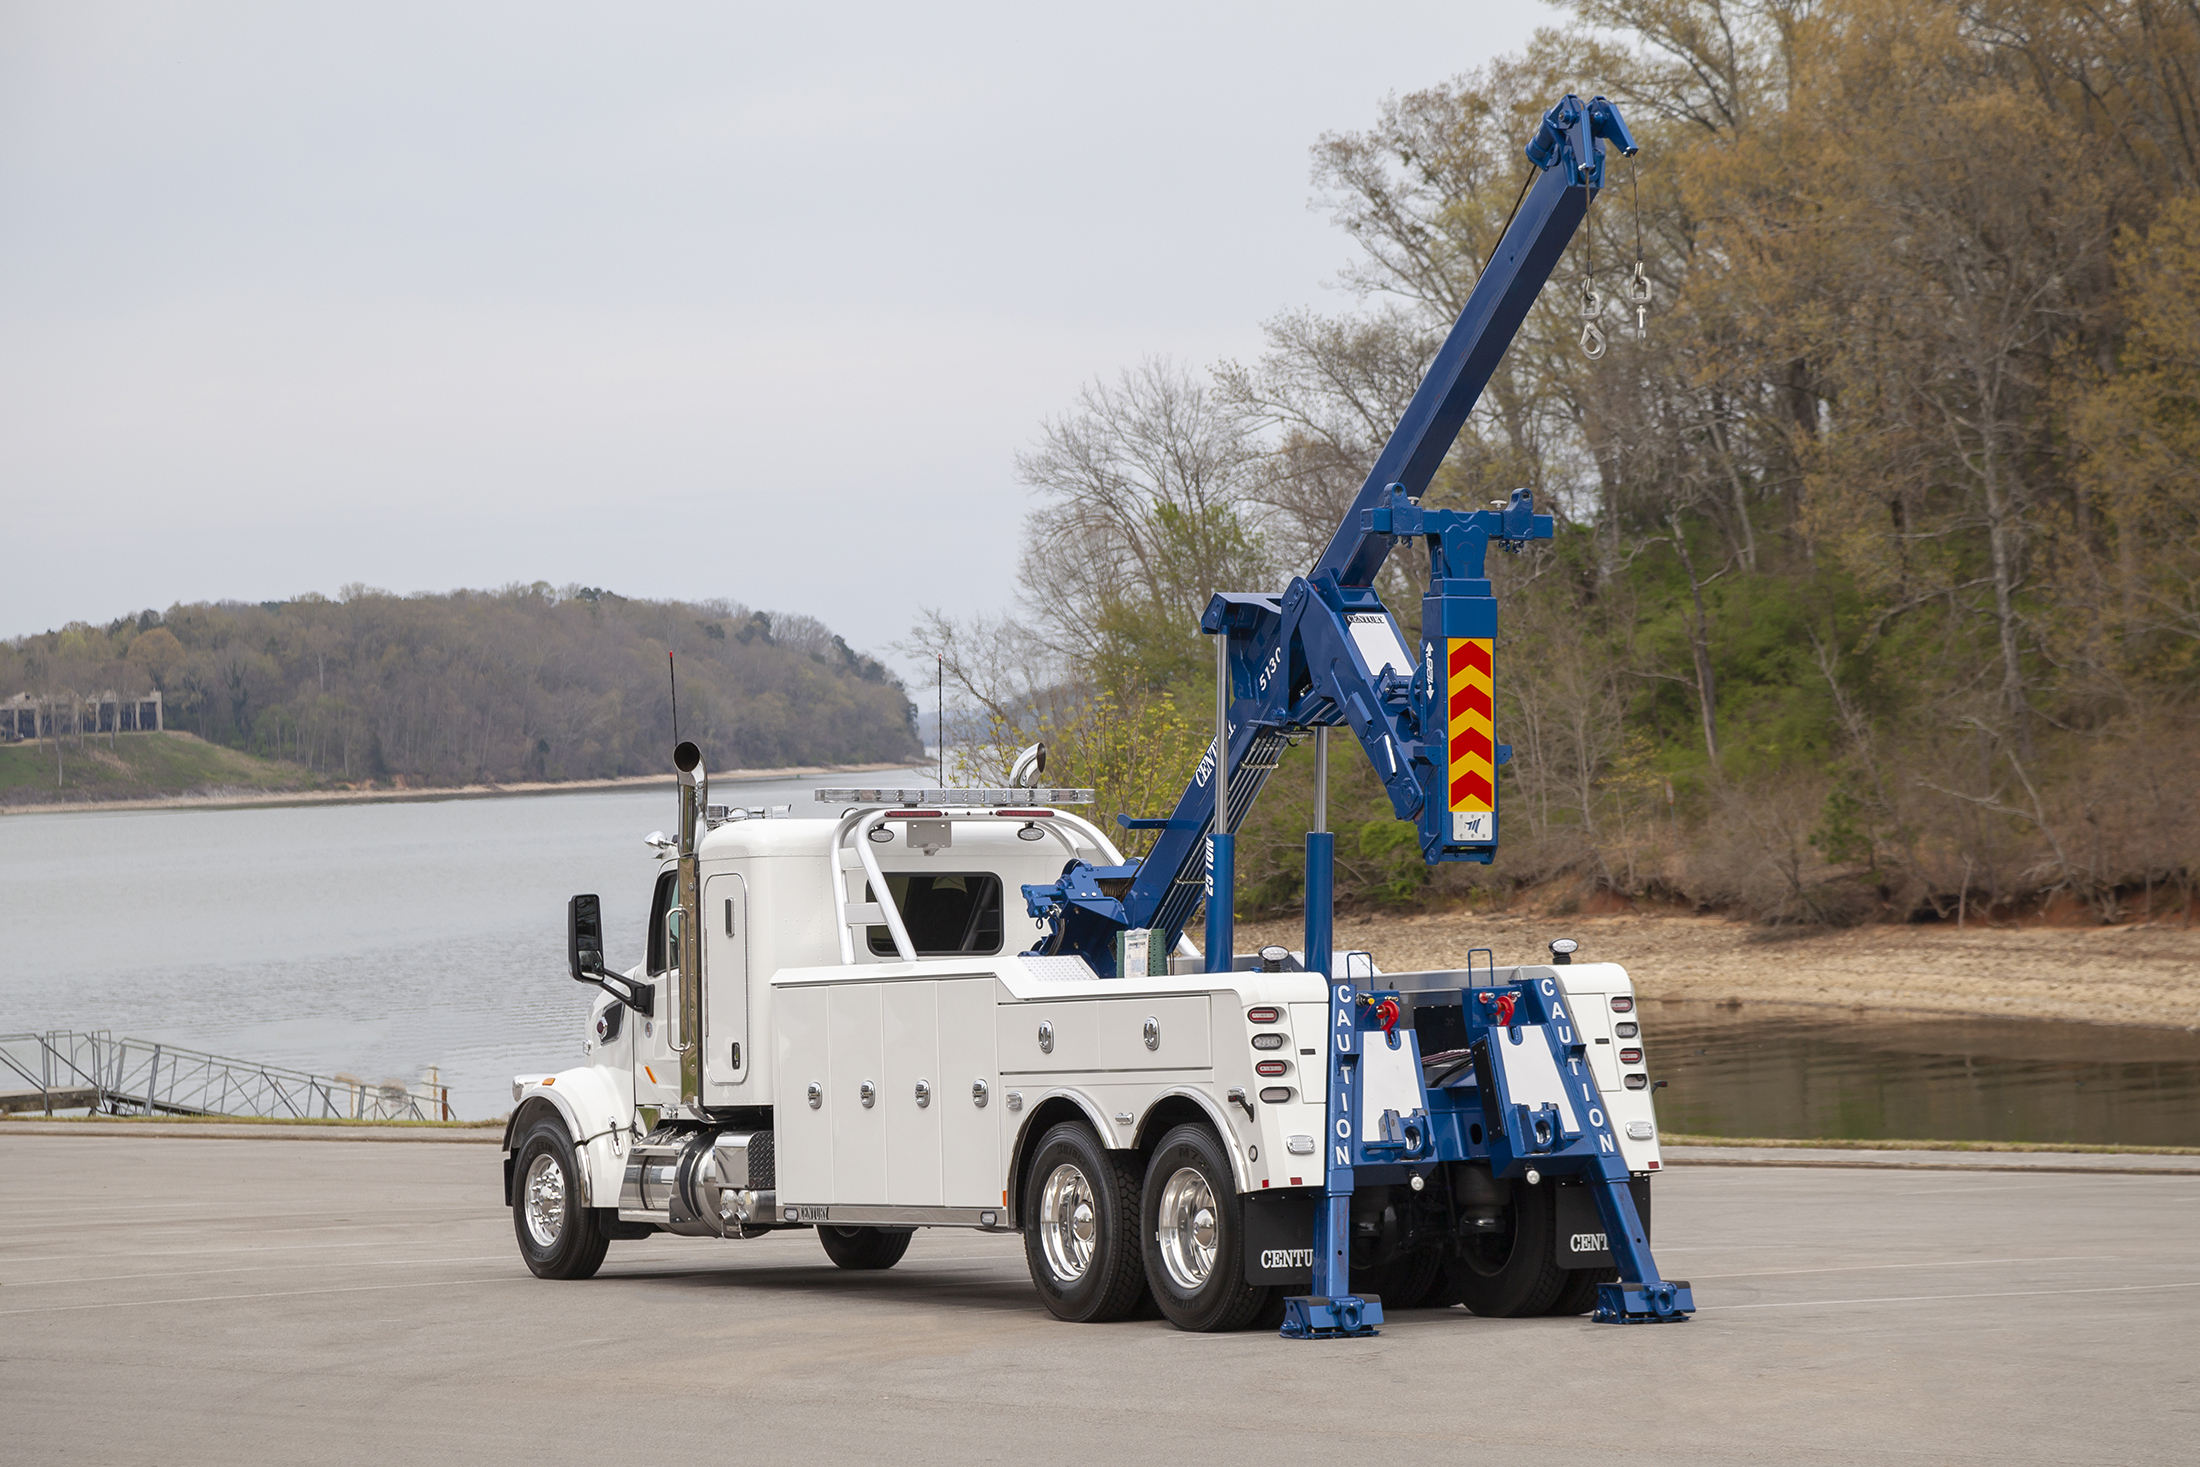 Century® 5130 Heavy-Duty Integrated Wrecker is the Worlds Best 25-Ton Towing & Recovery Unit from Miller Industries